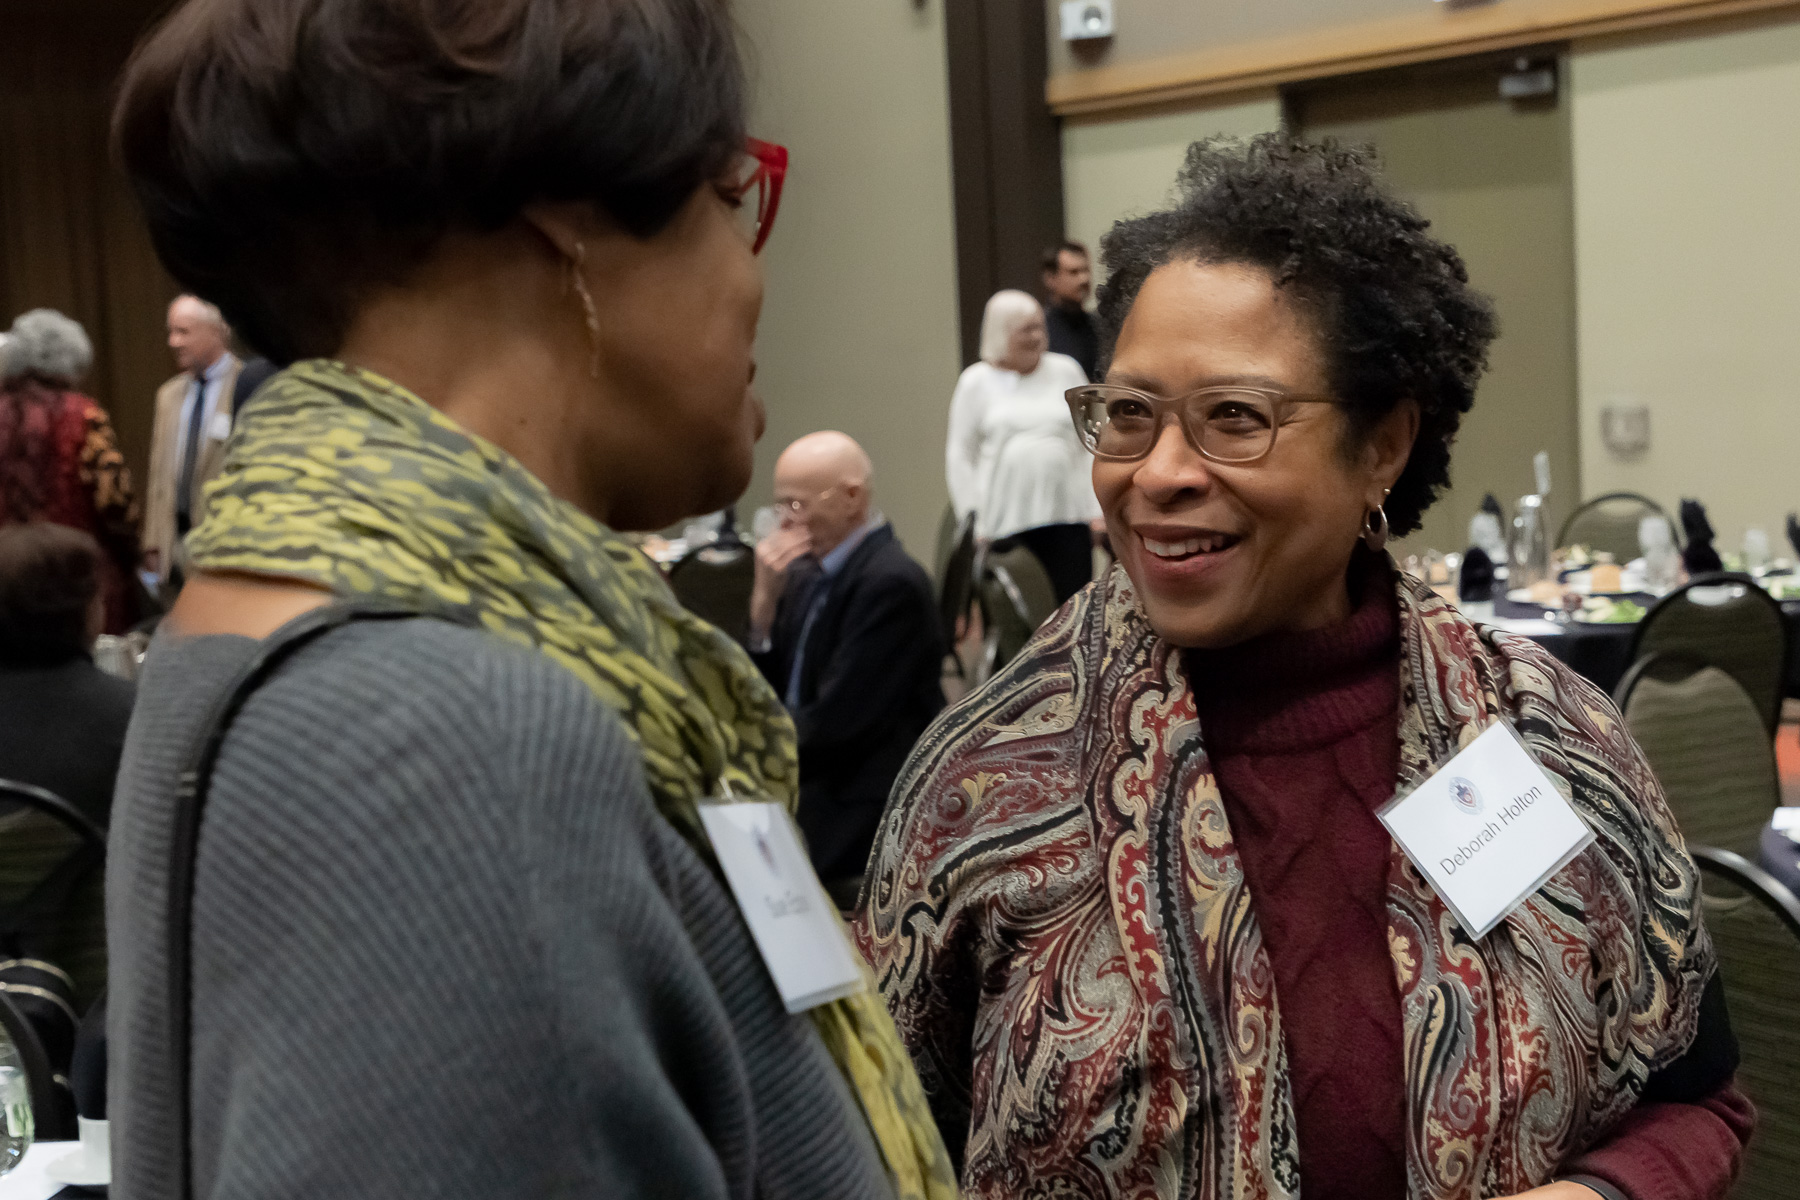 Deborah Holton, School for New Learning, right, talks with fellow honorees as DePaul University faculty and staff members are honored for their 25 years of service during a luncheon, Tuesday, Nov. 13, 2018, at the Lincoln Park Student Center. The honorees were recognized by A. Gabriel Esteban, Ph.D., president of DePaul, and will have their names added to plaques located on the Loop and Lincoln Park Campuses. (DePaul University/Jeff Carrion)